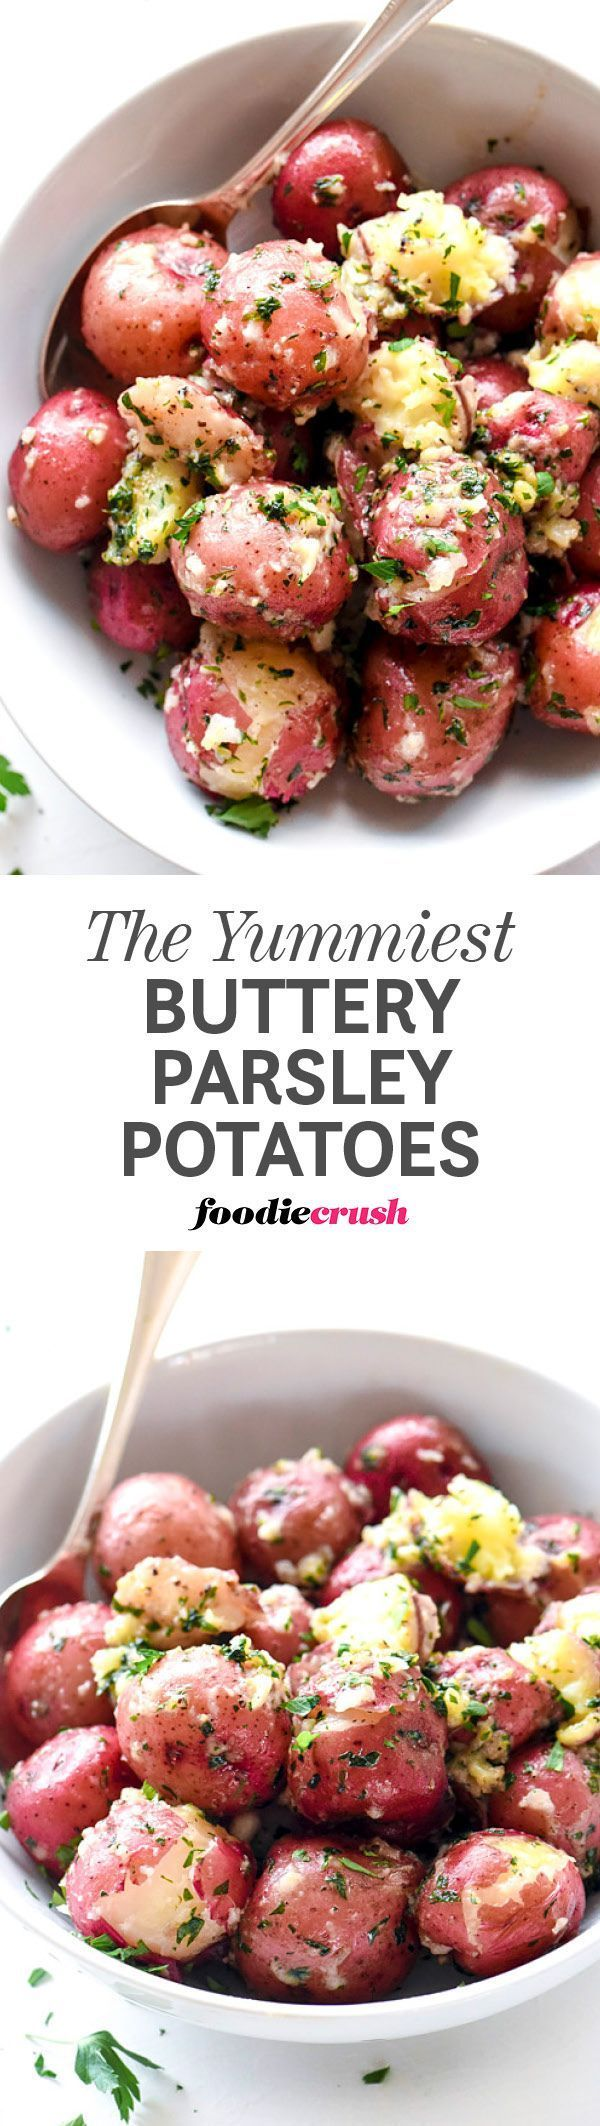 Boiled baby red potatoes get an infusion of butter and parsley to make this super simple side dish one of my all-time favorites for any meal   foodiecrush.com #potatoes #redpotatoes #sidedish